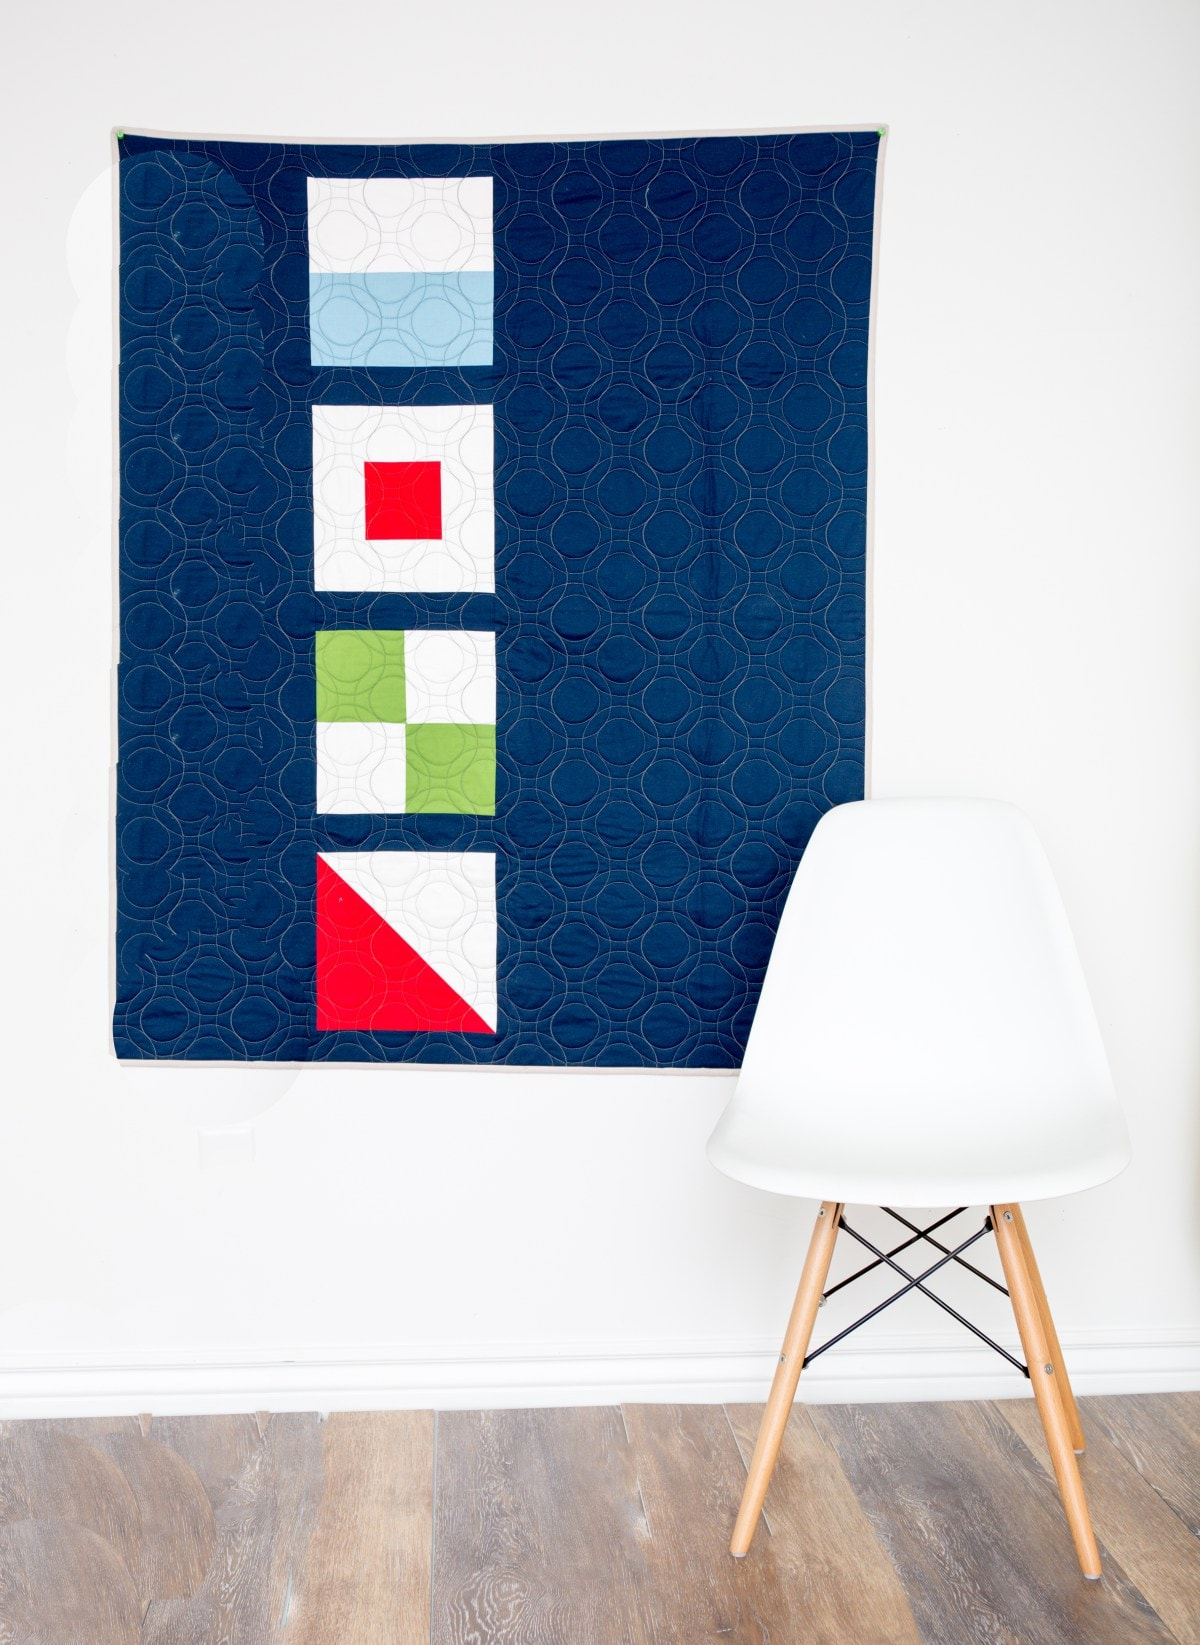 quilt on wall with chair